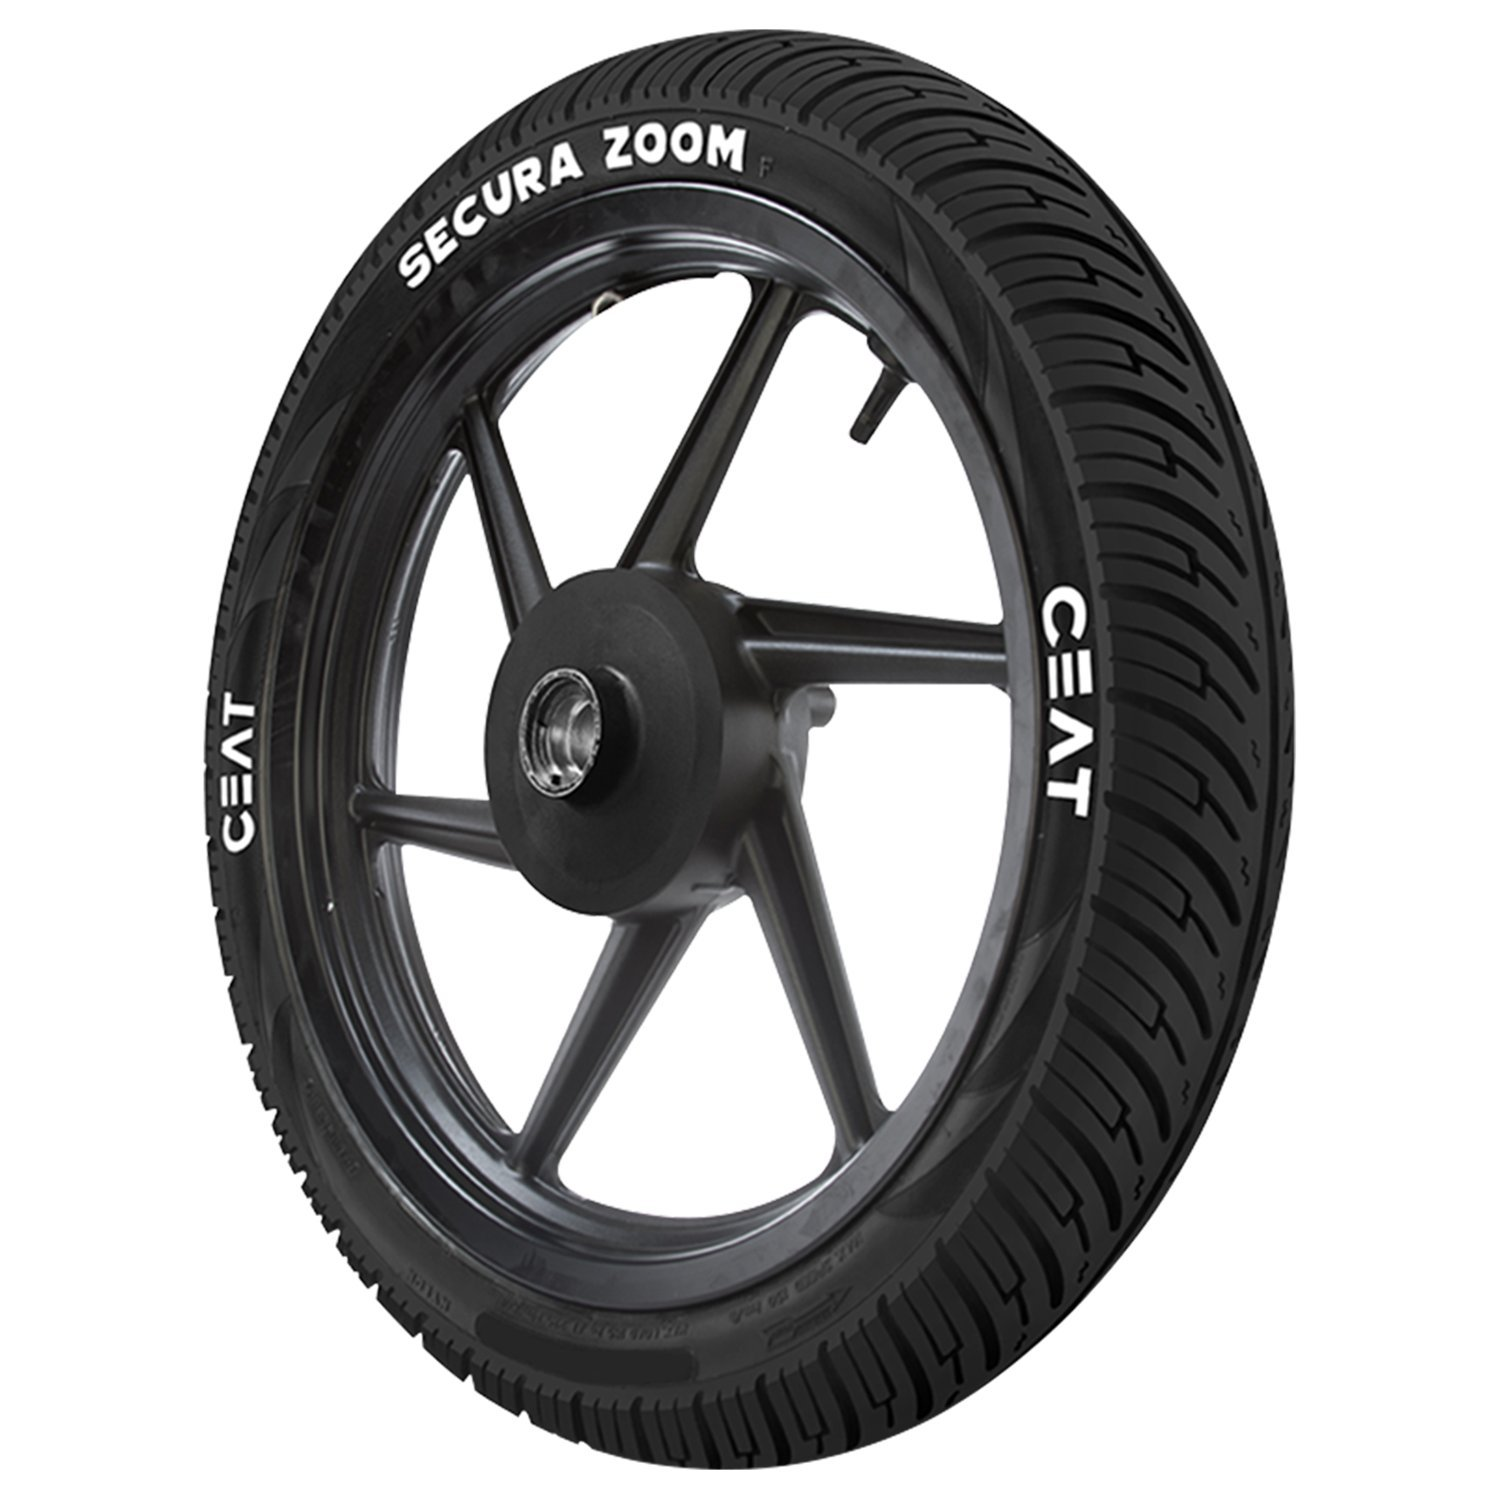 Ceat Secura Zoom F 90/90-17 49P Tubeless Bike Tyre, Front (Home Delivery) product image